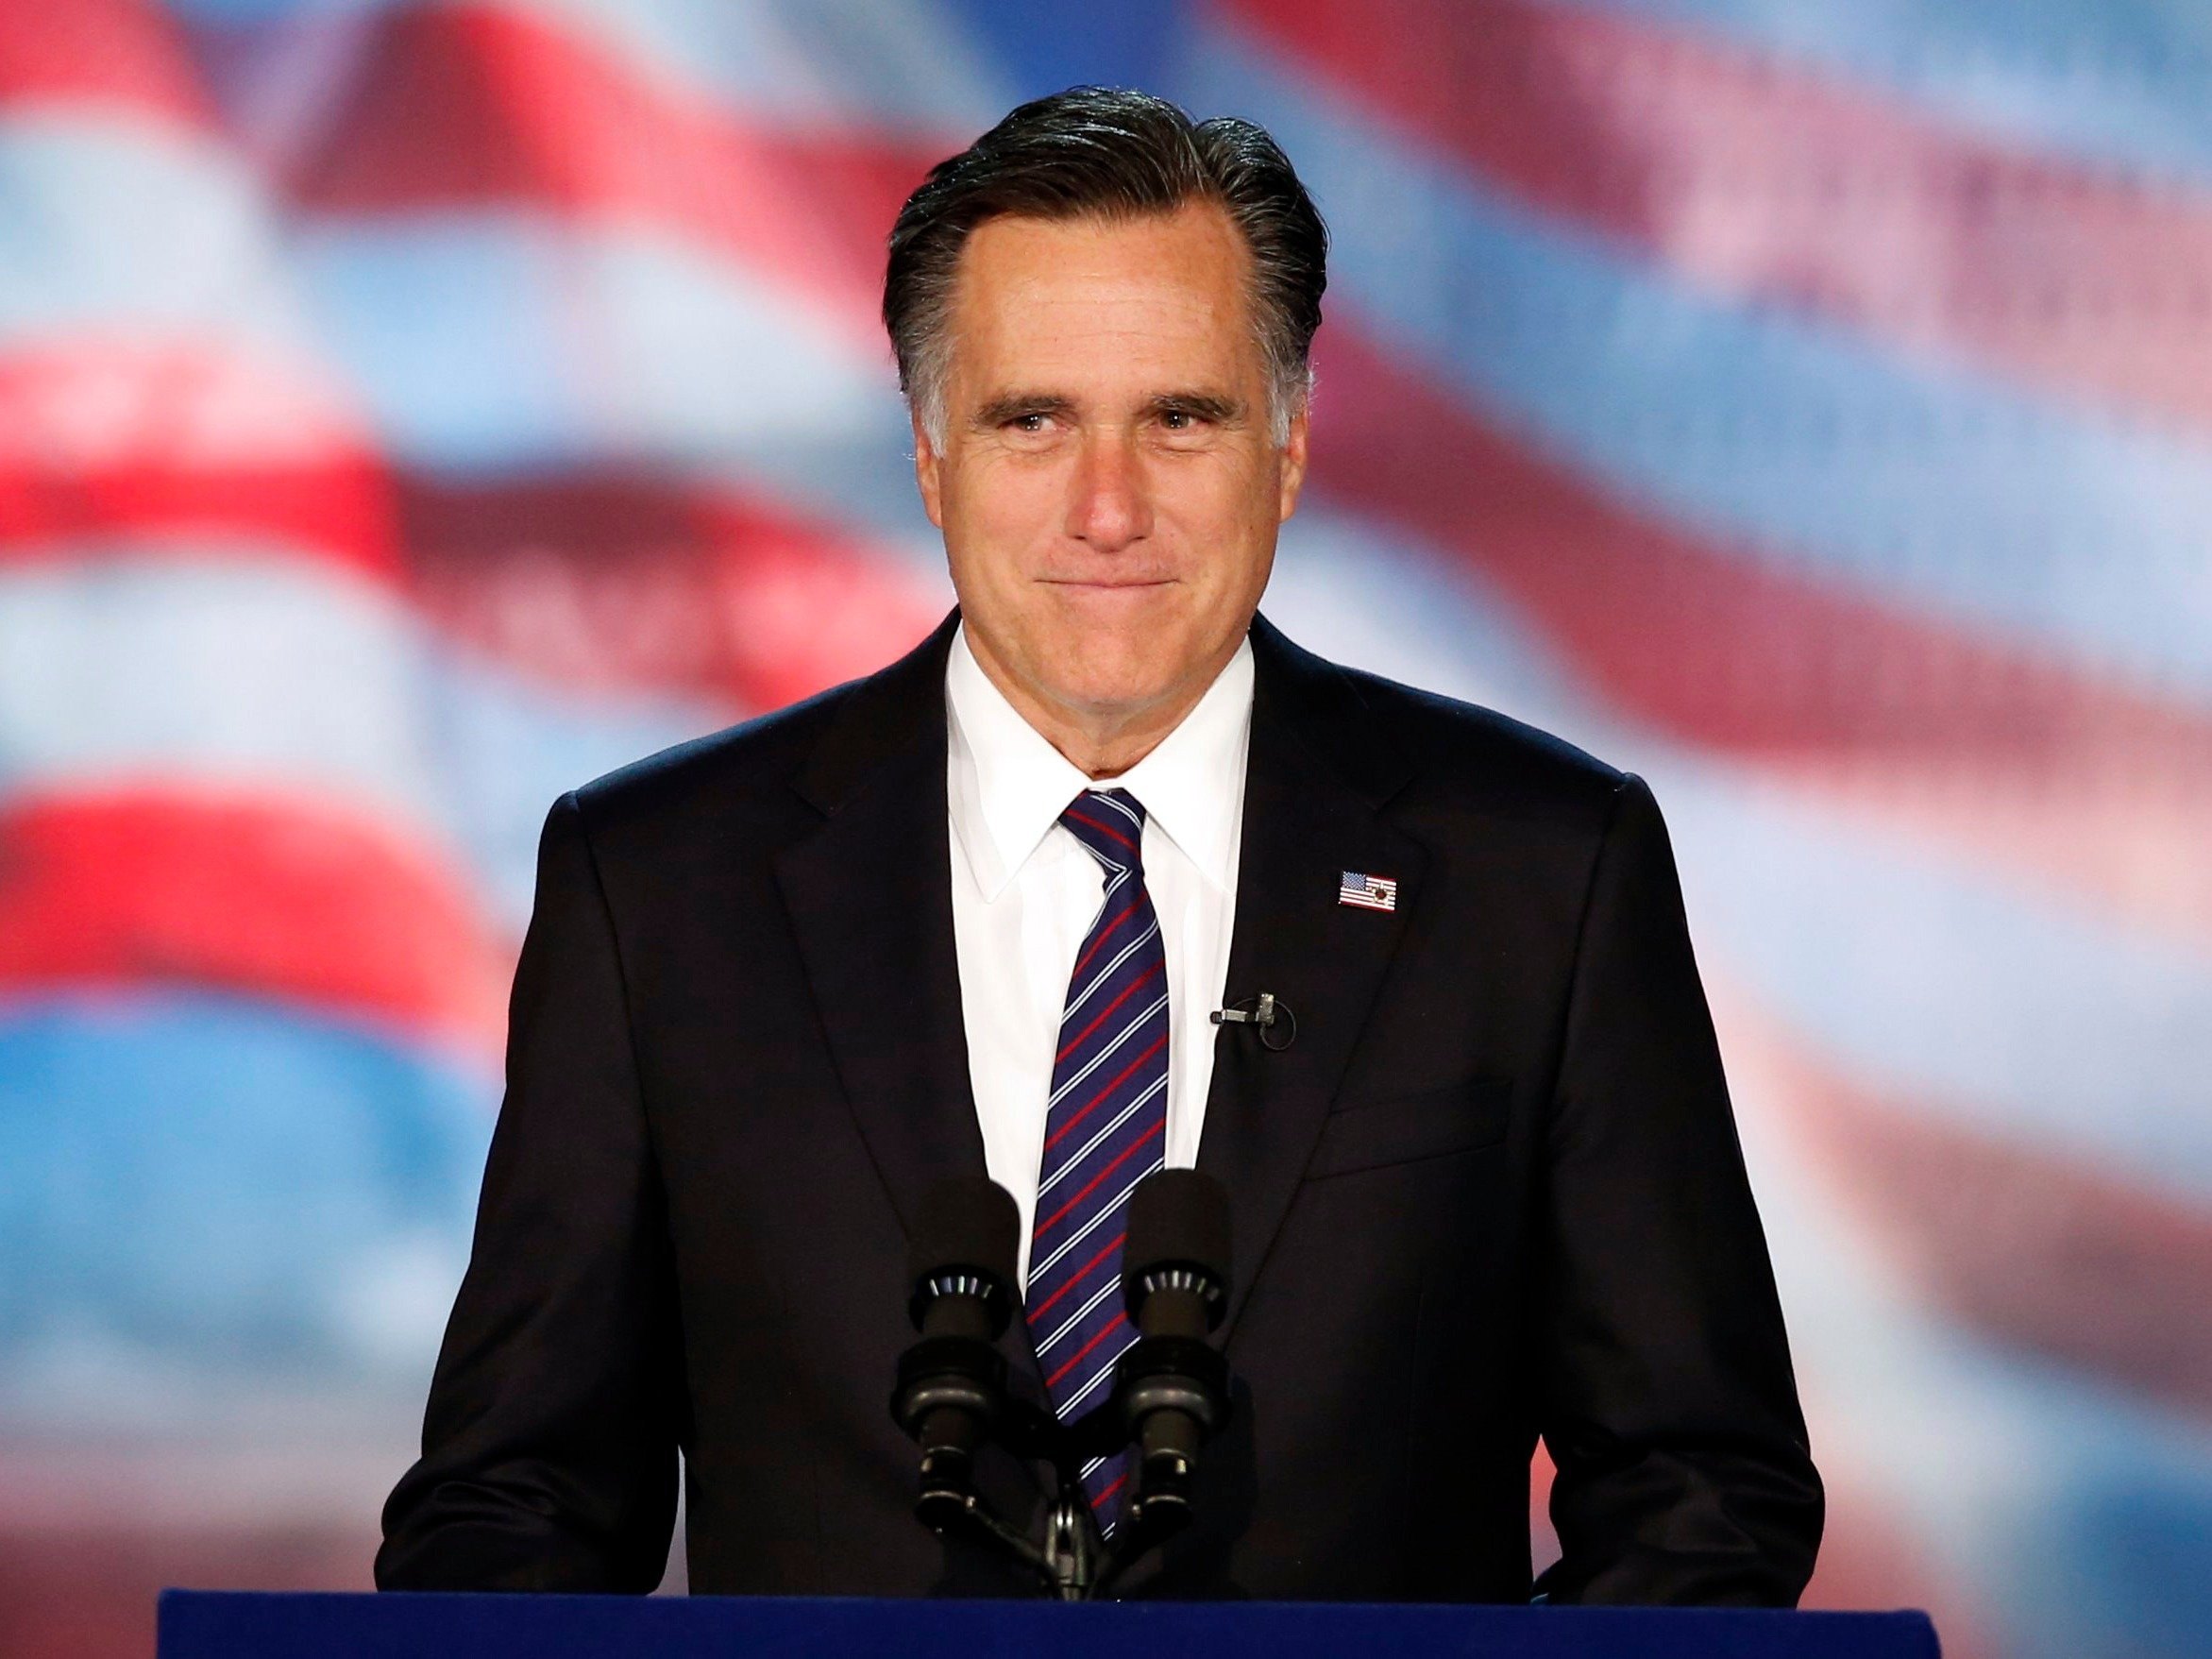 Romney Senate run pegged as steppingstone to challenge Trump in 2020